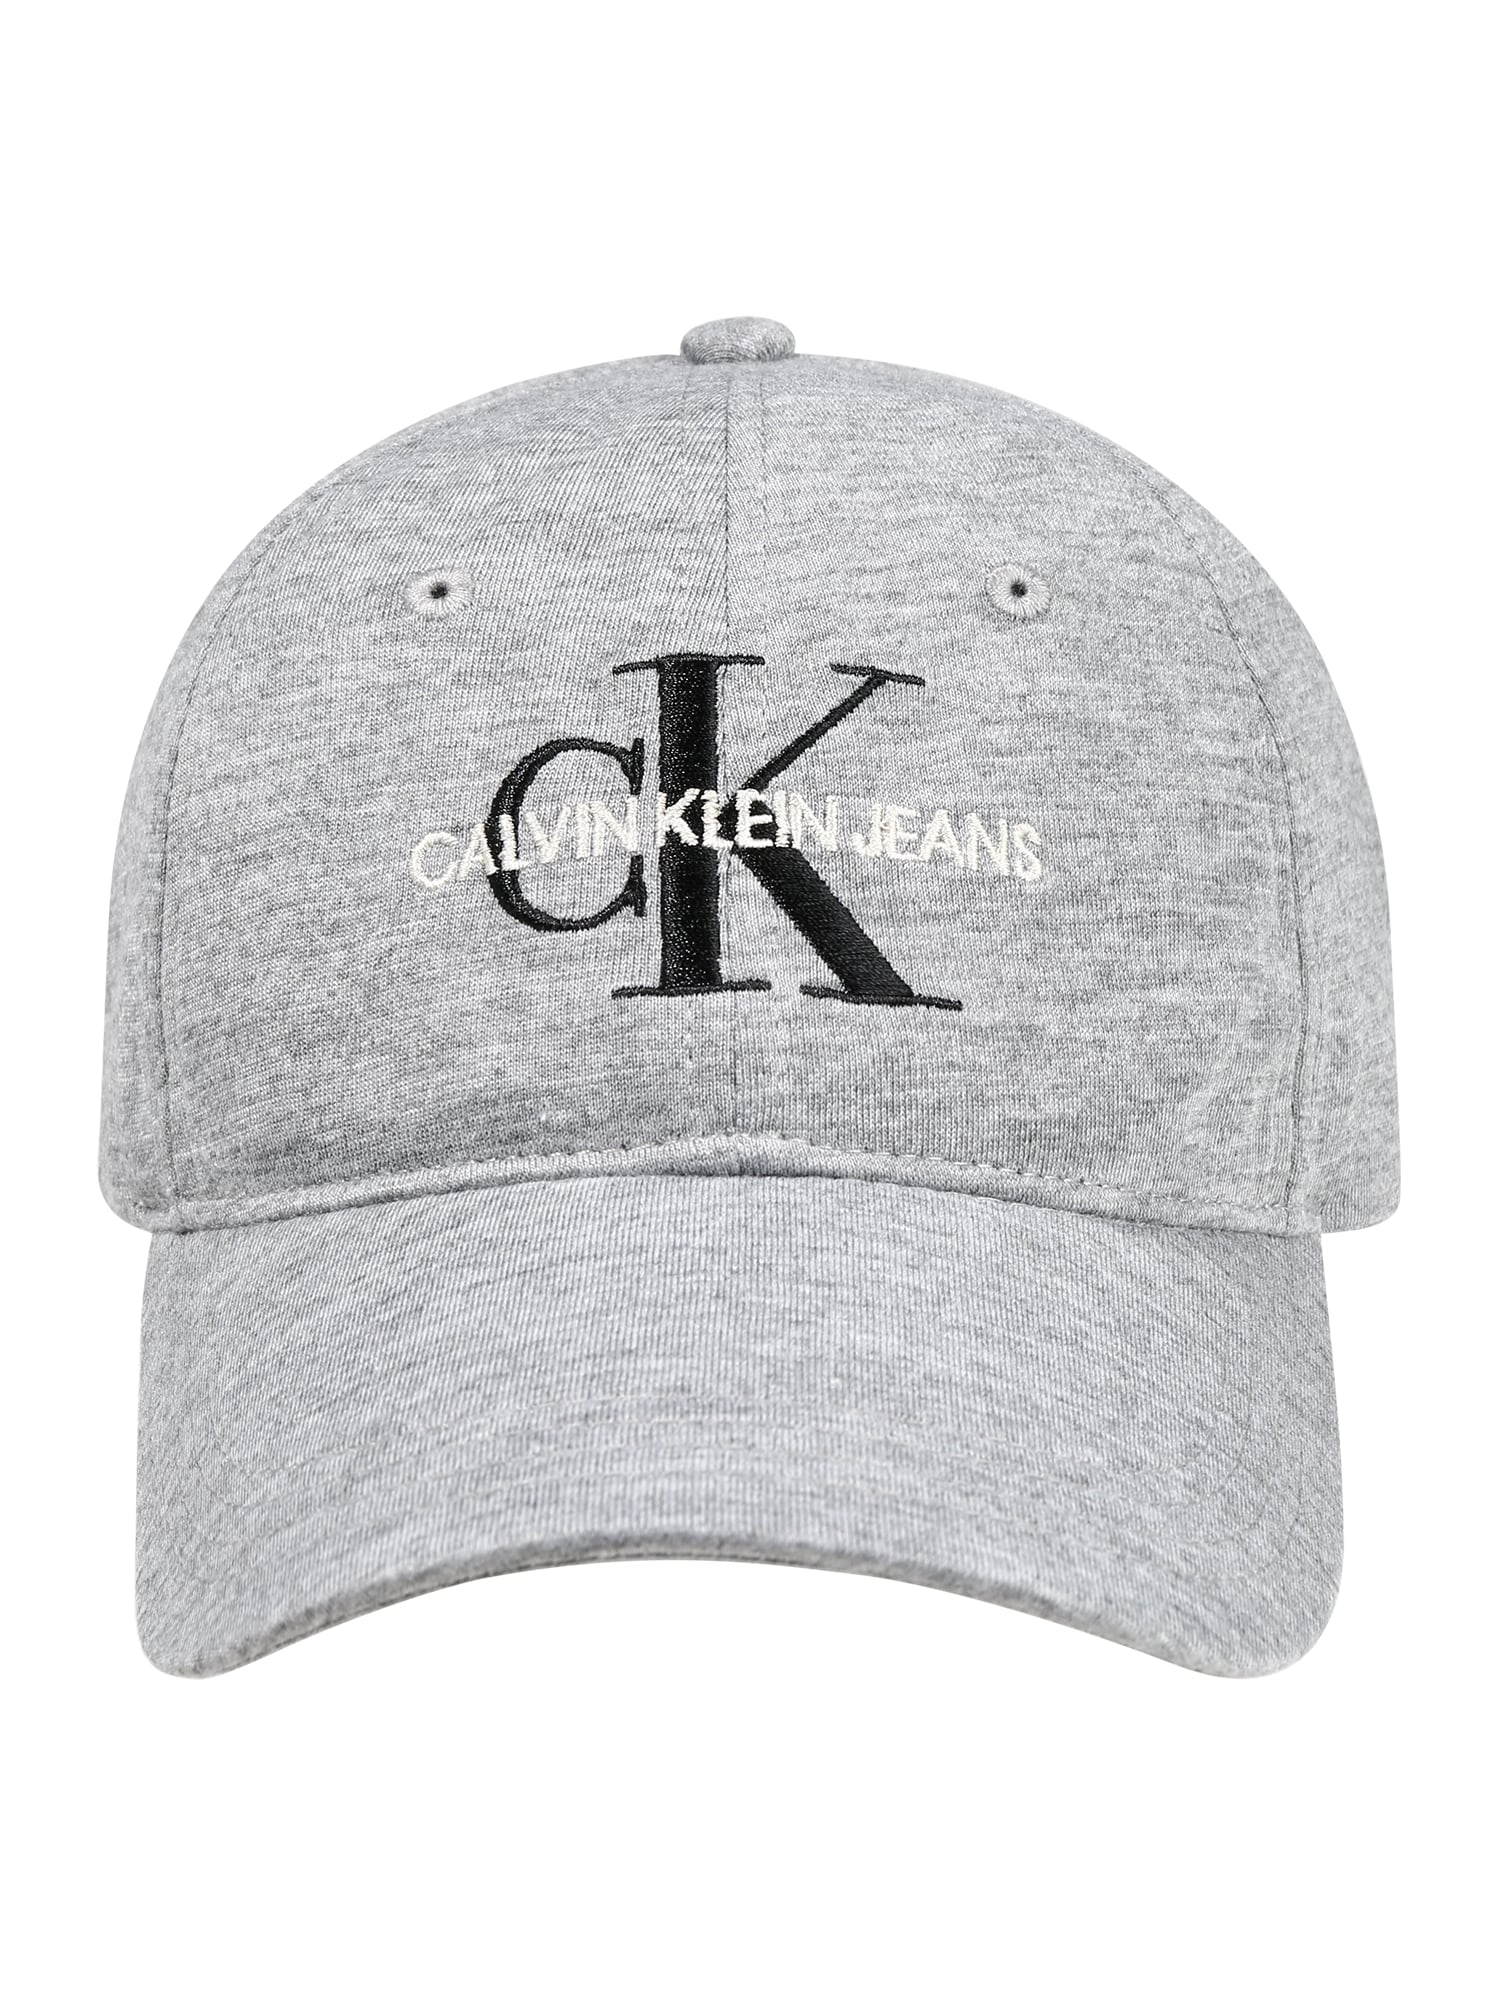 calvin klein jeans - Cap 'J MONOGRAM CAP WITH EMBROIDERY'